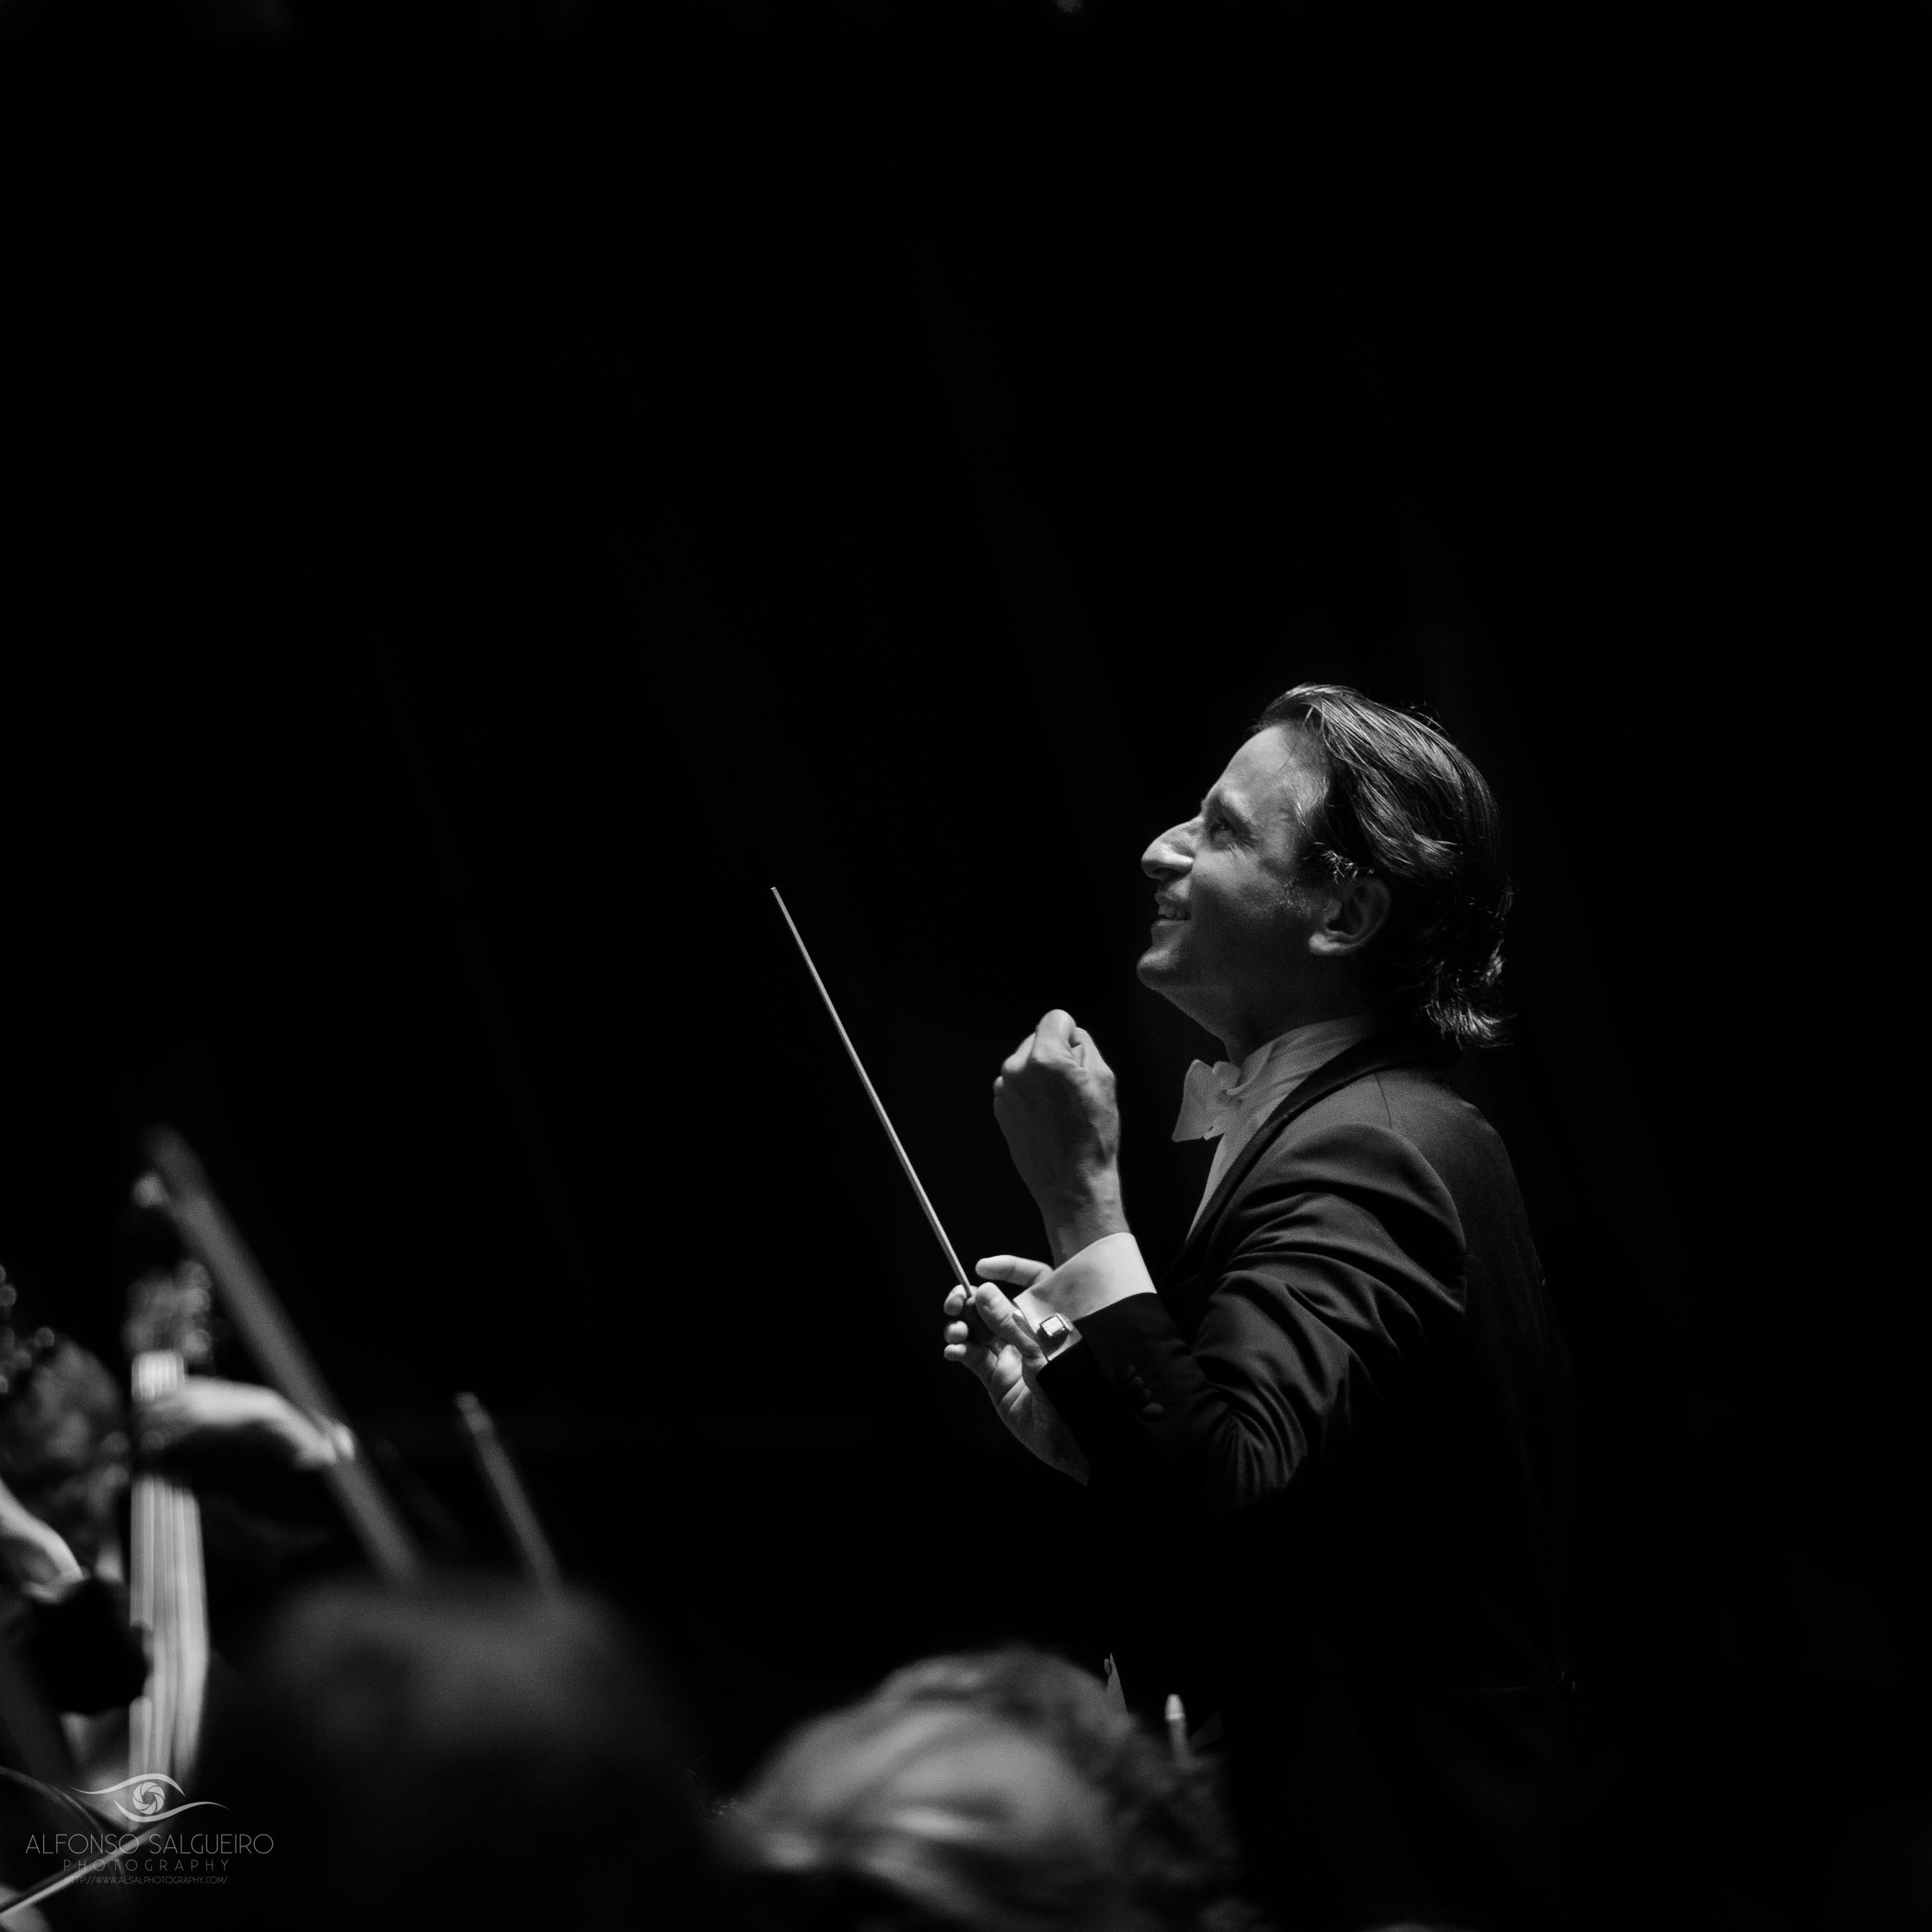 Philharmonie 18-19 season in images_-4.jpg